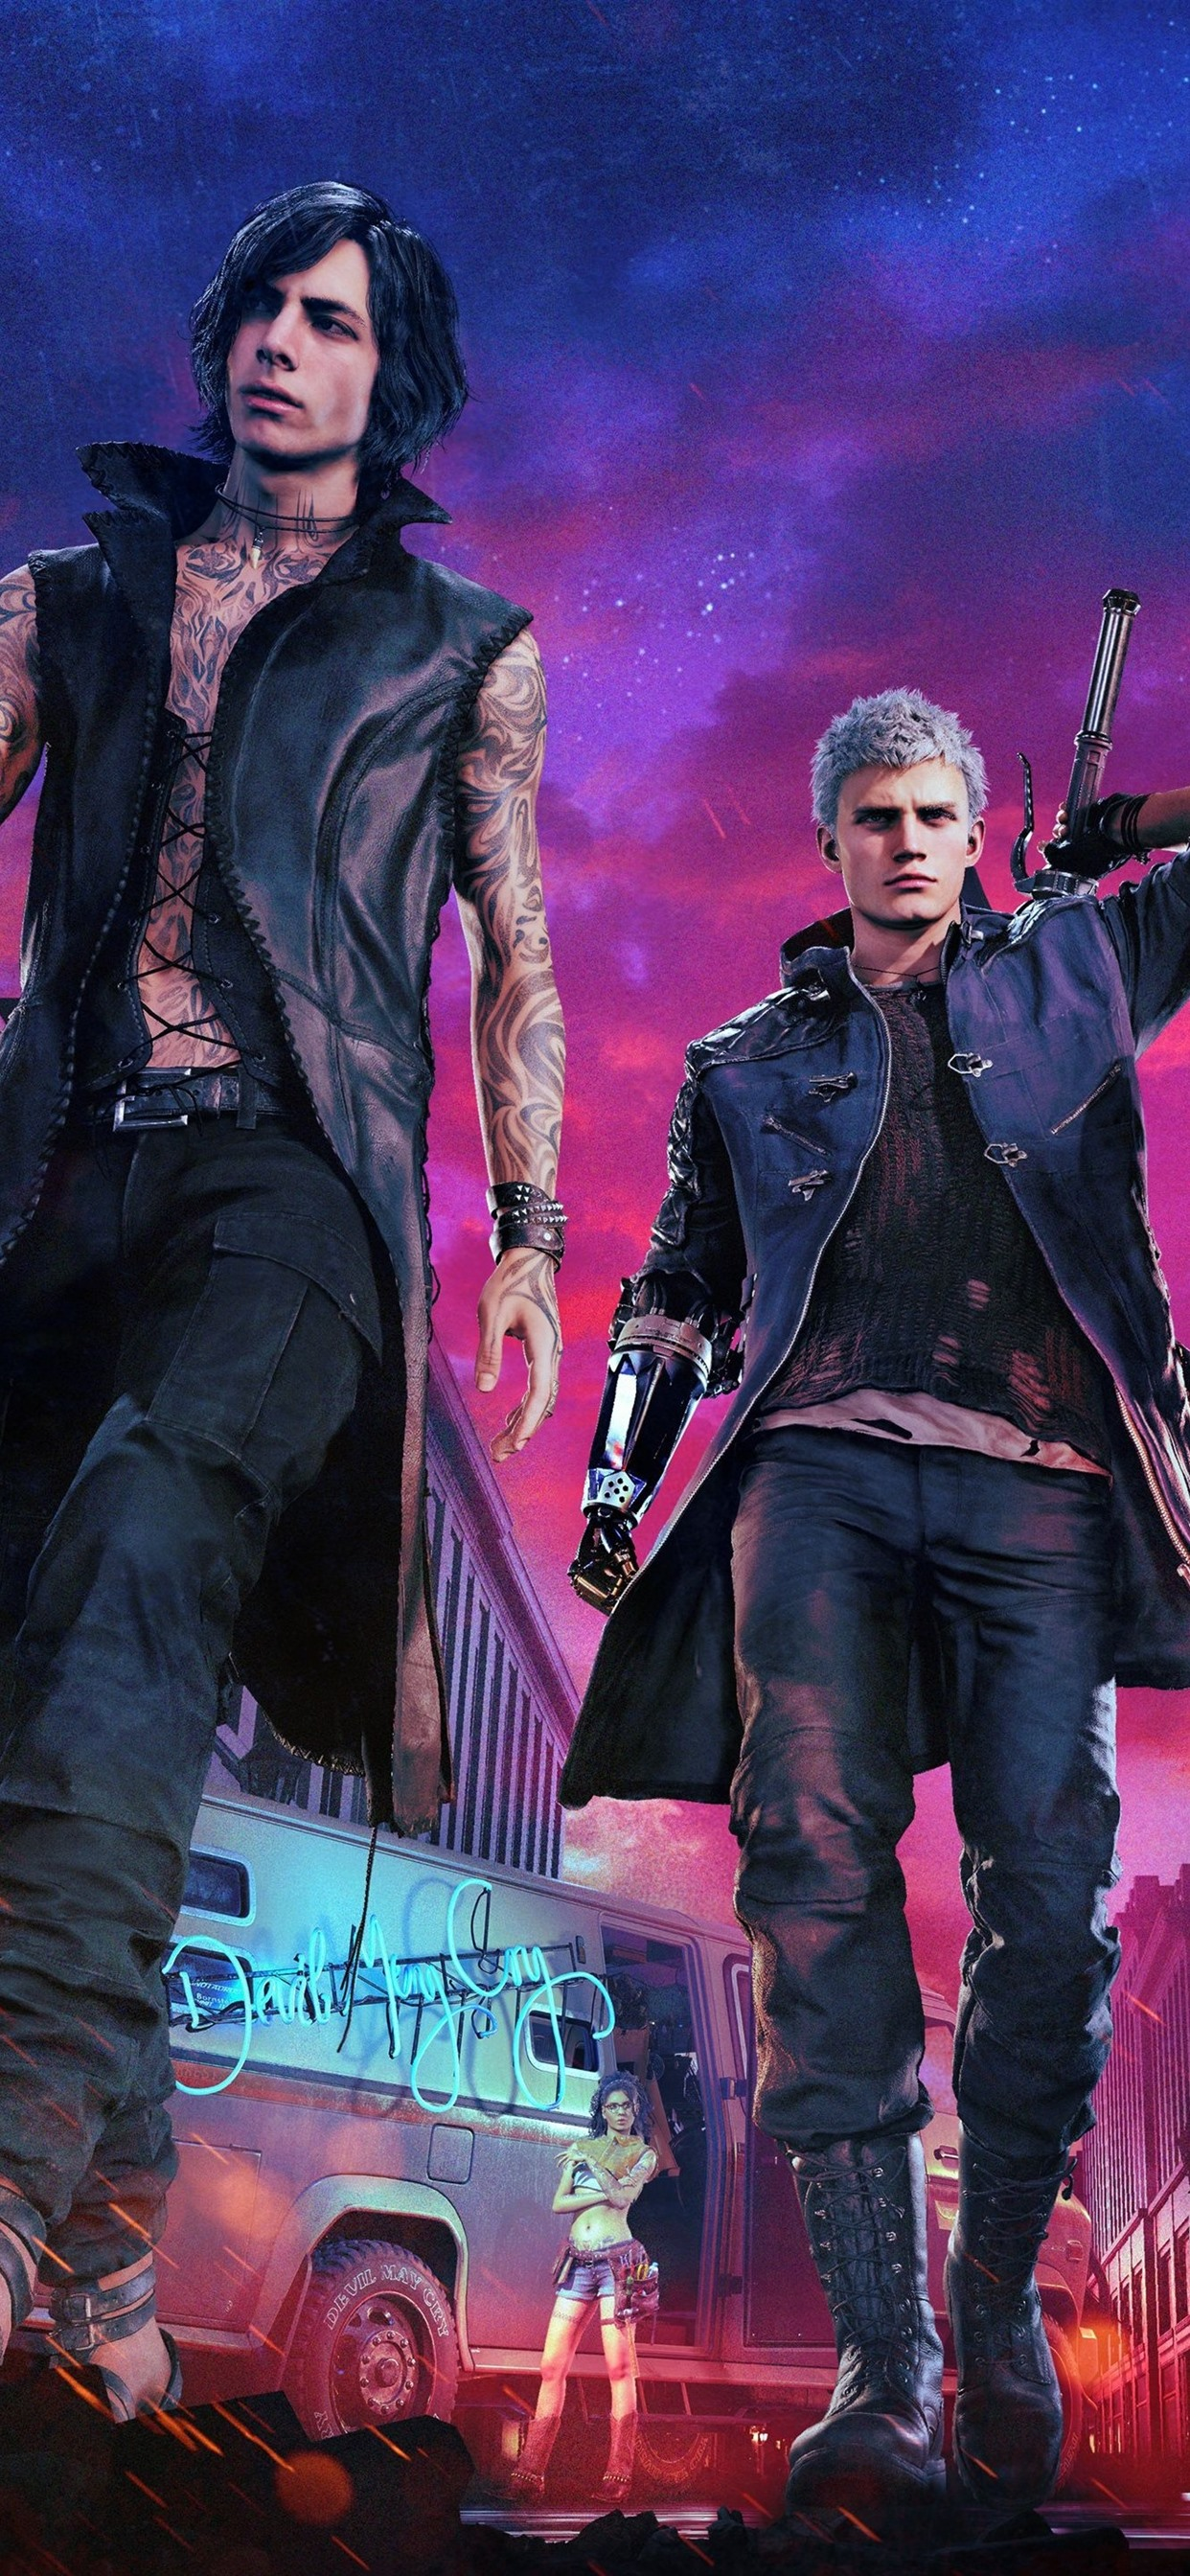 Devil May Cry 5 Ps4 Game 1242x2688 Iphone 11 Pro Xs Max Wallpaper